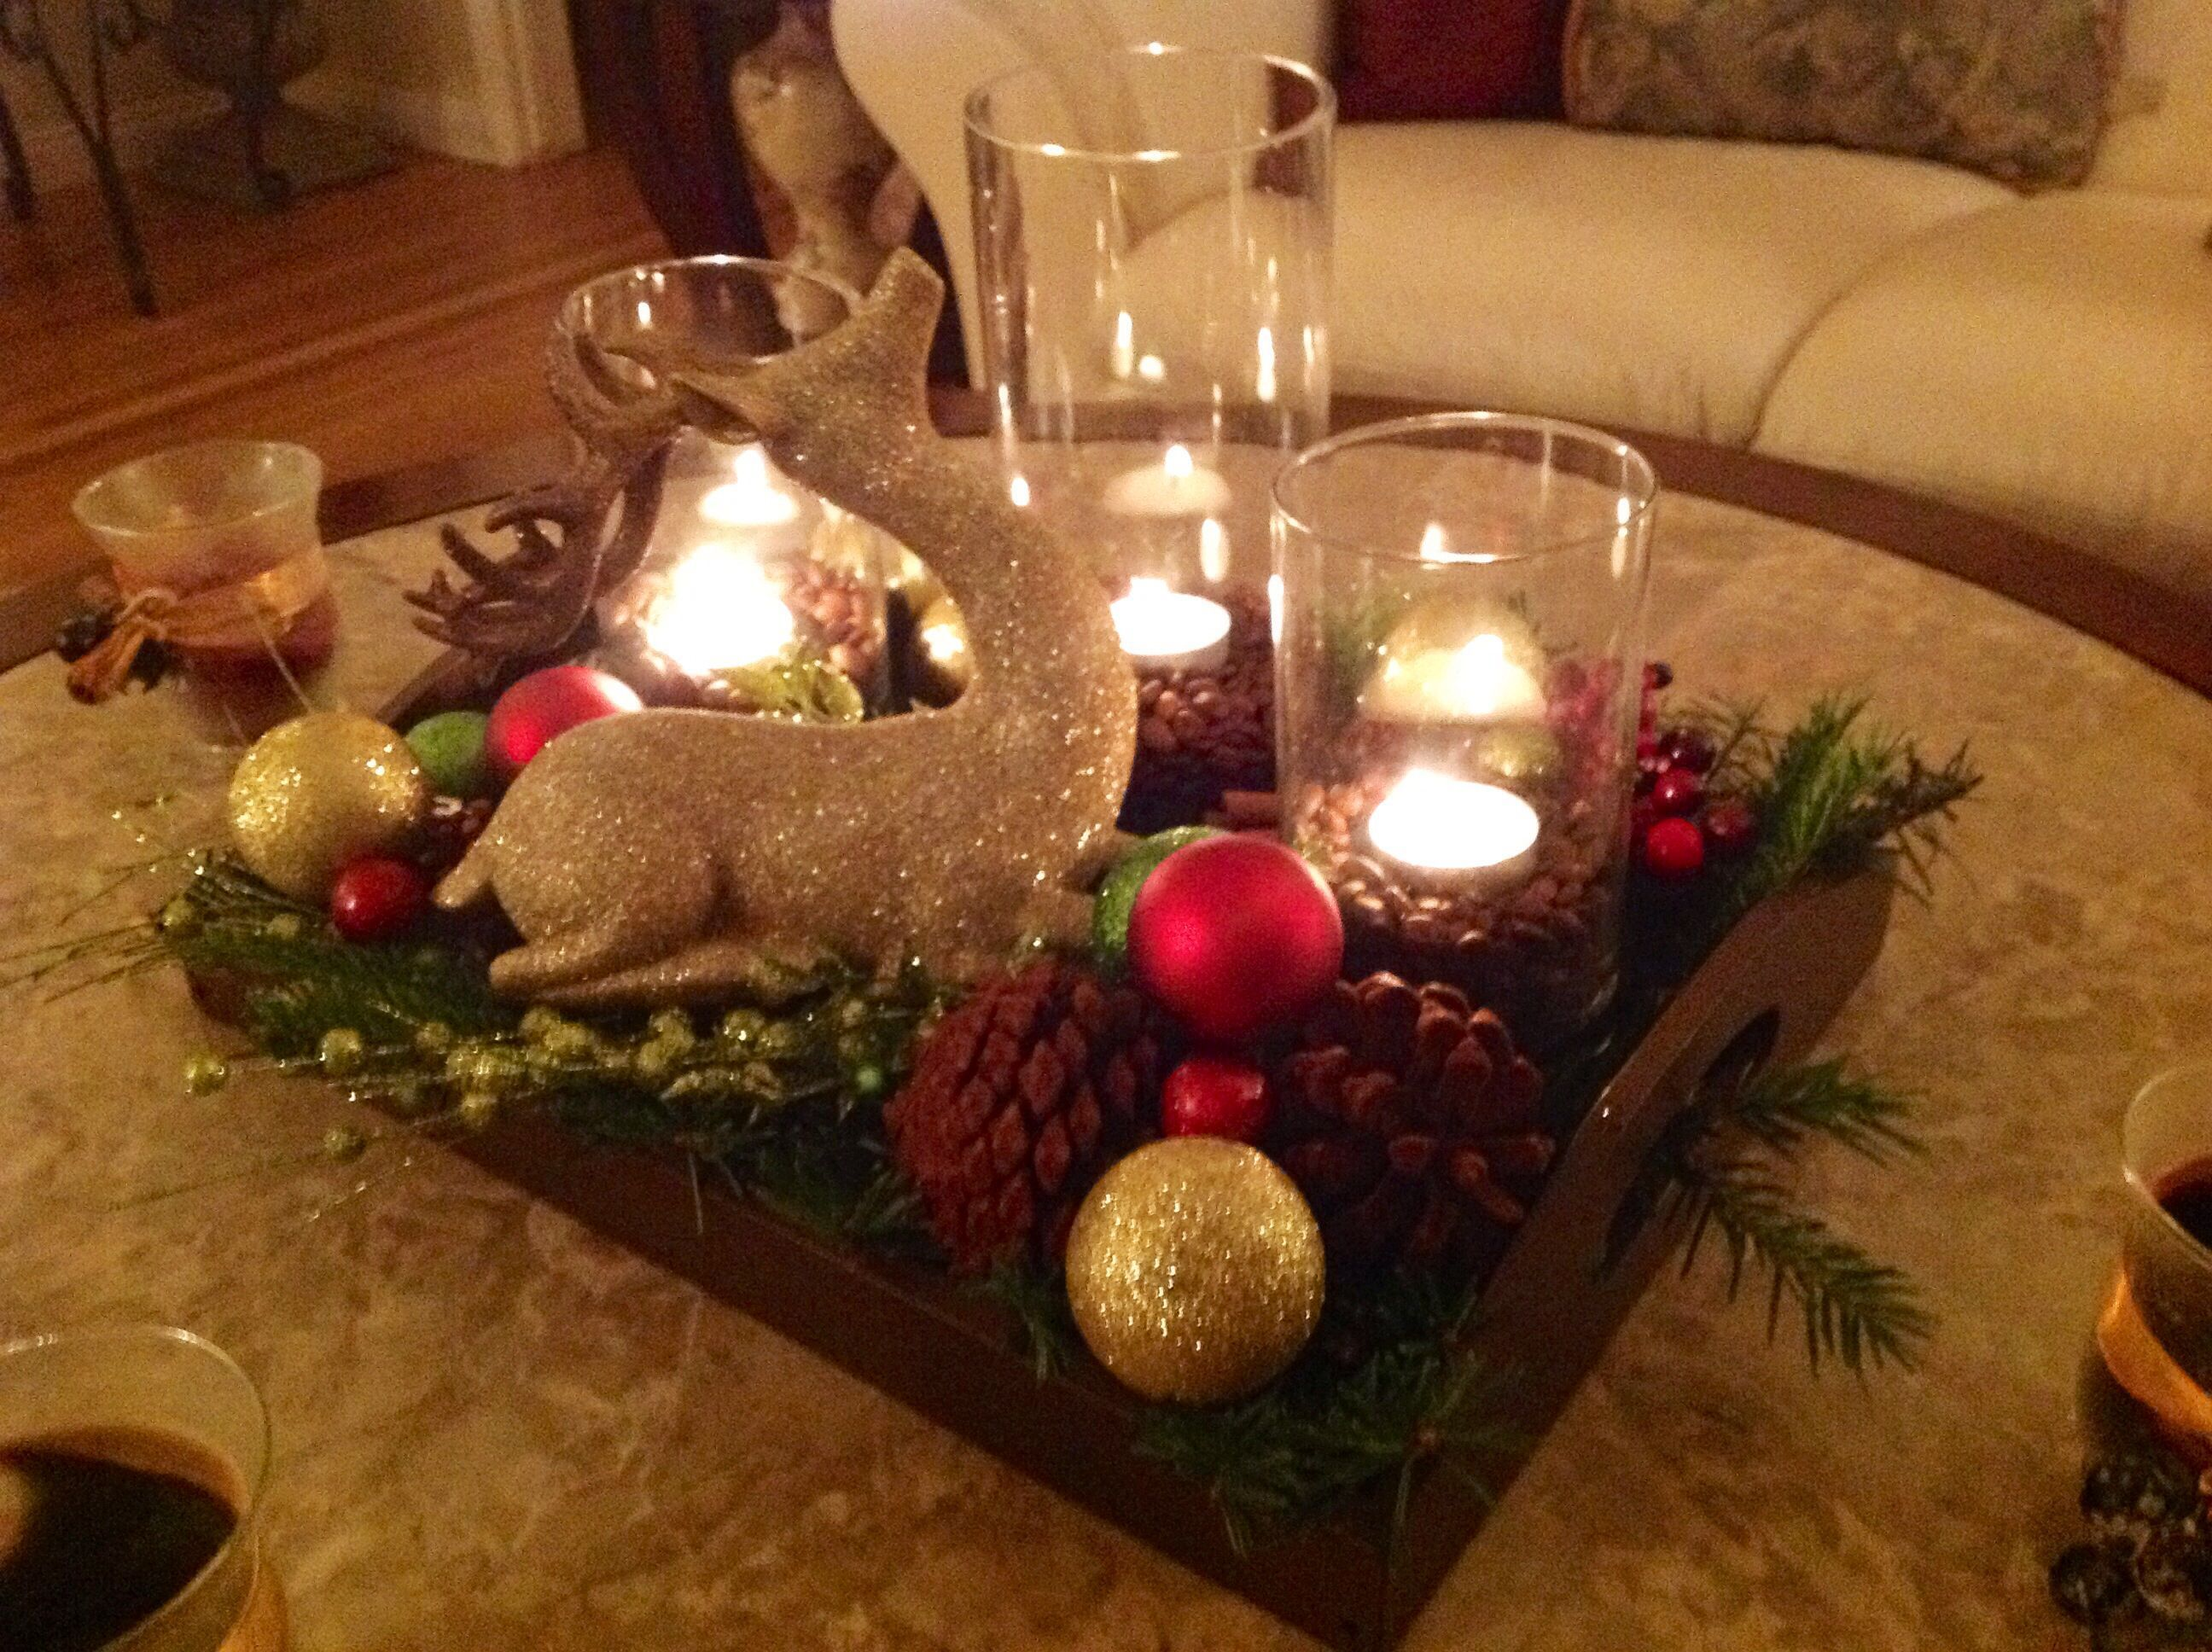 Pin By Wendy Mascotto On Gardening Christmas Centerpieces